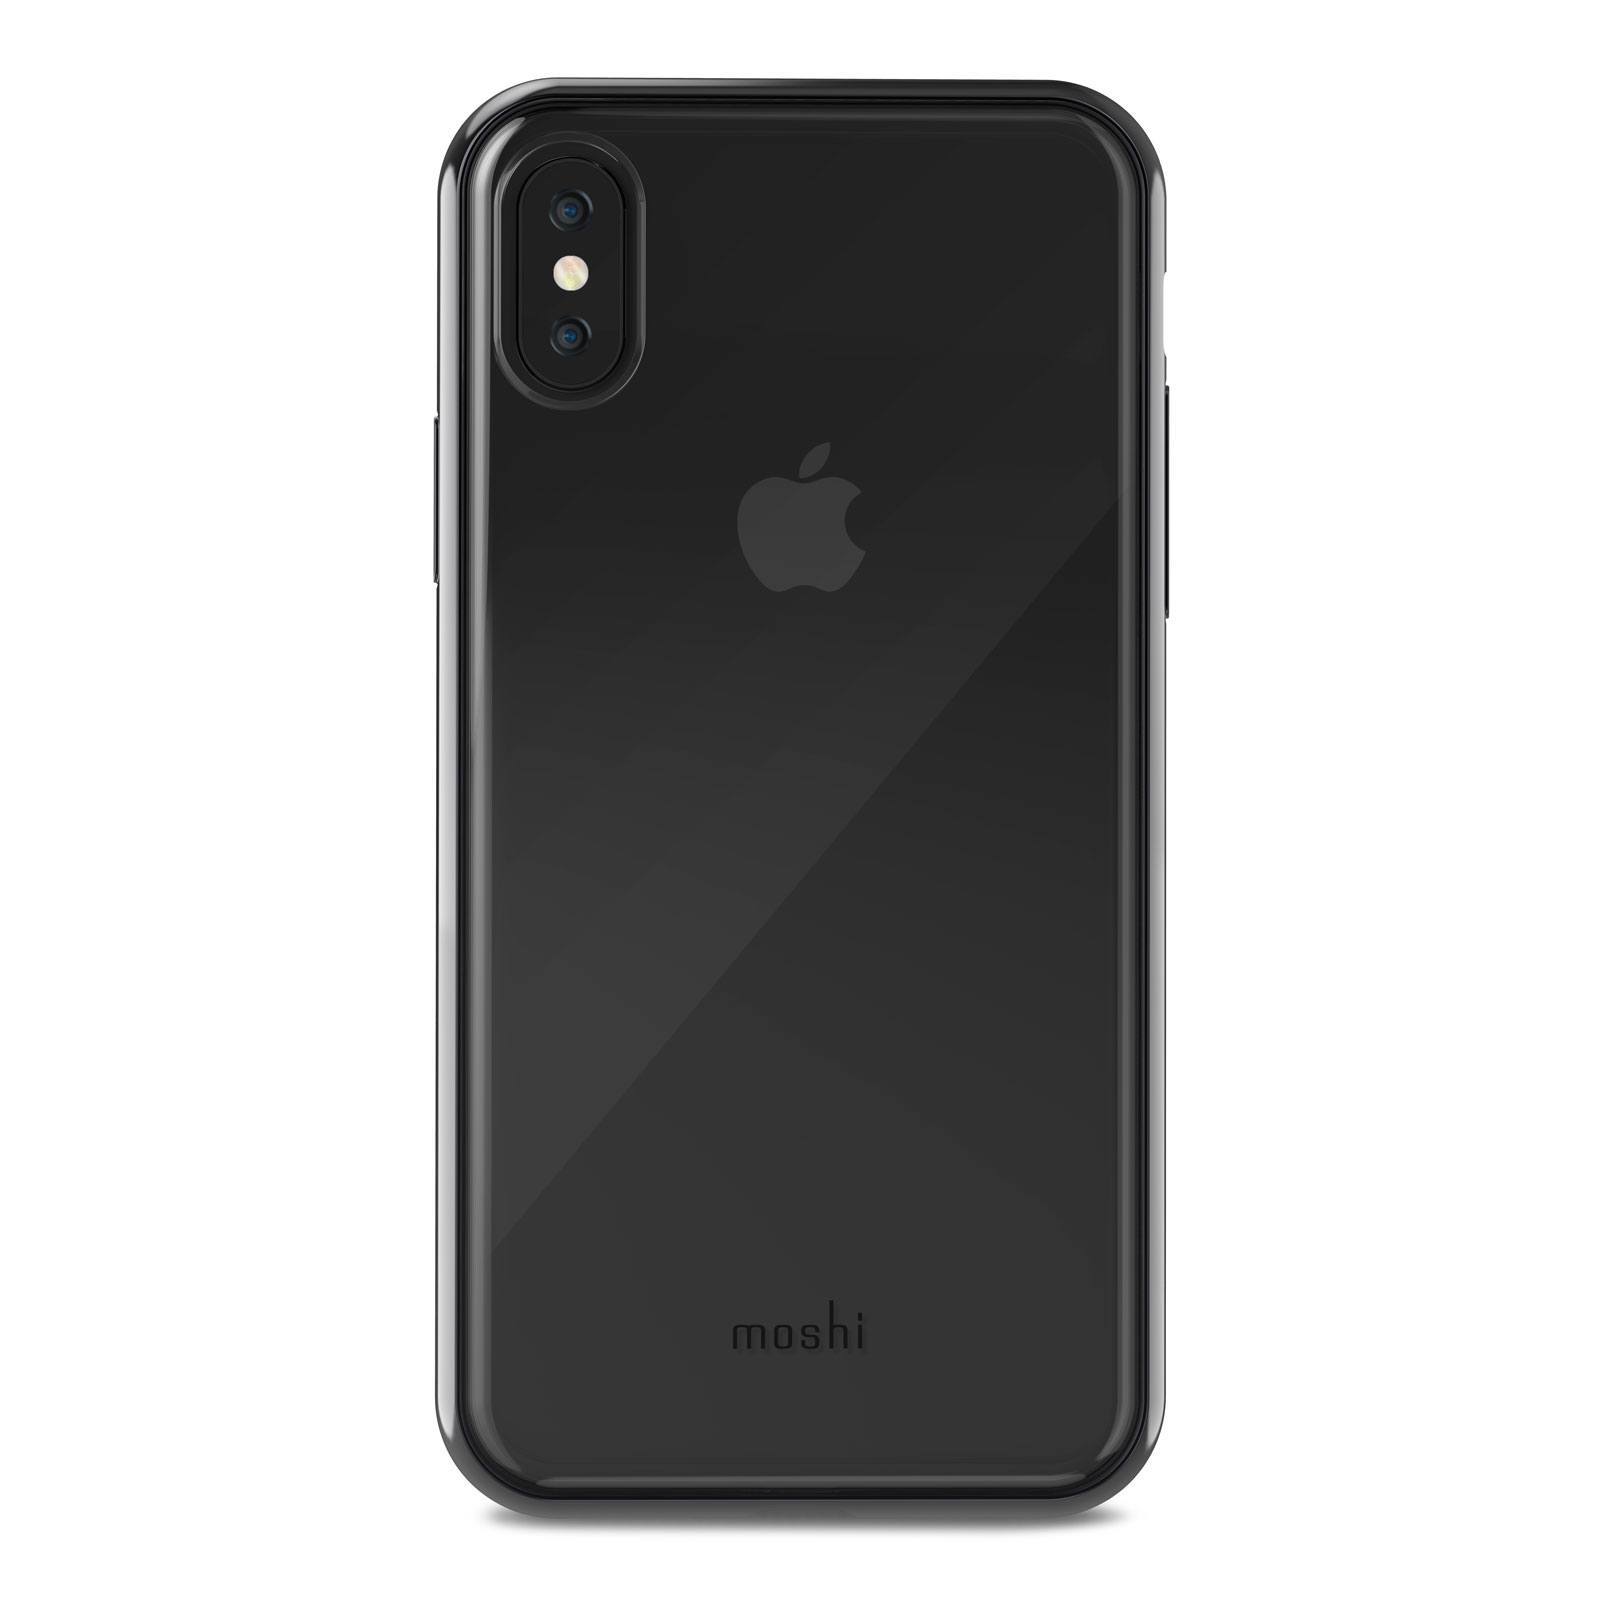 Moshi Vitros Case for iPhone XS/X